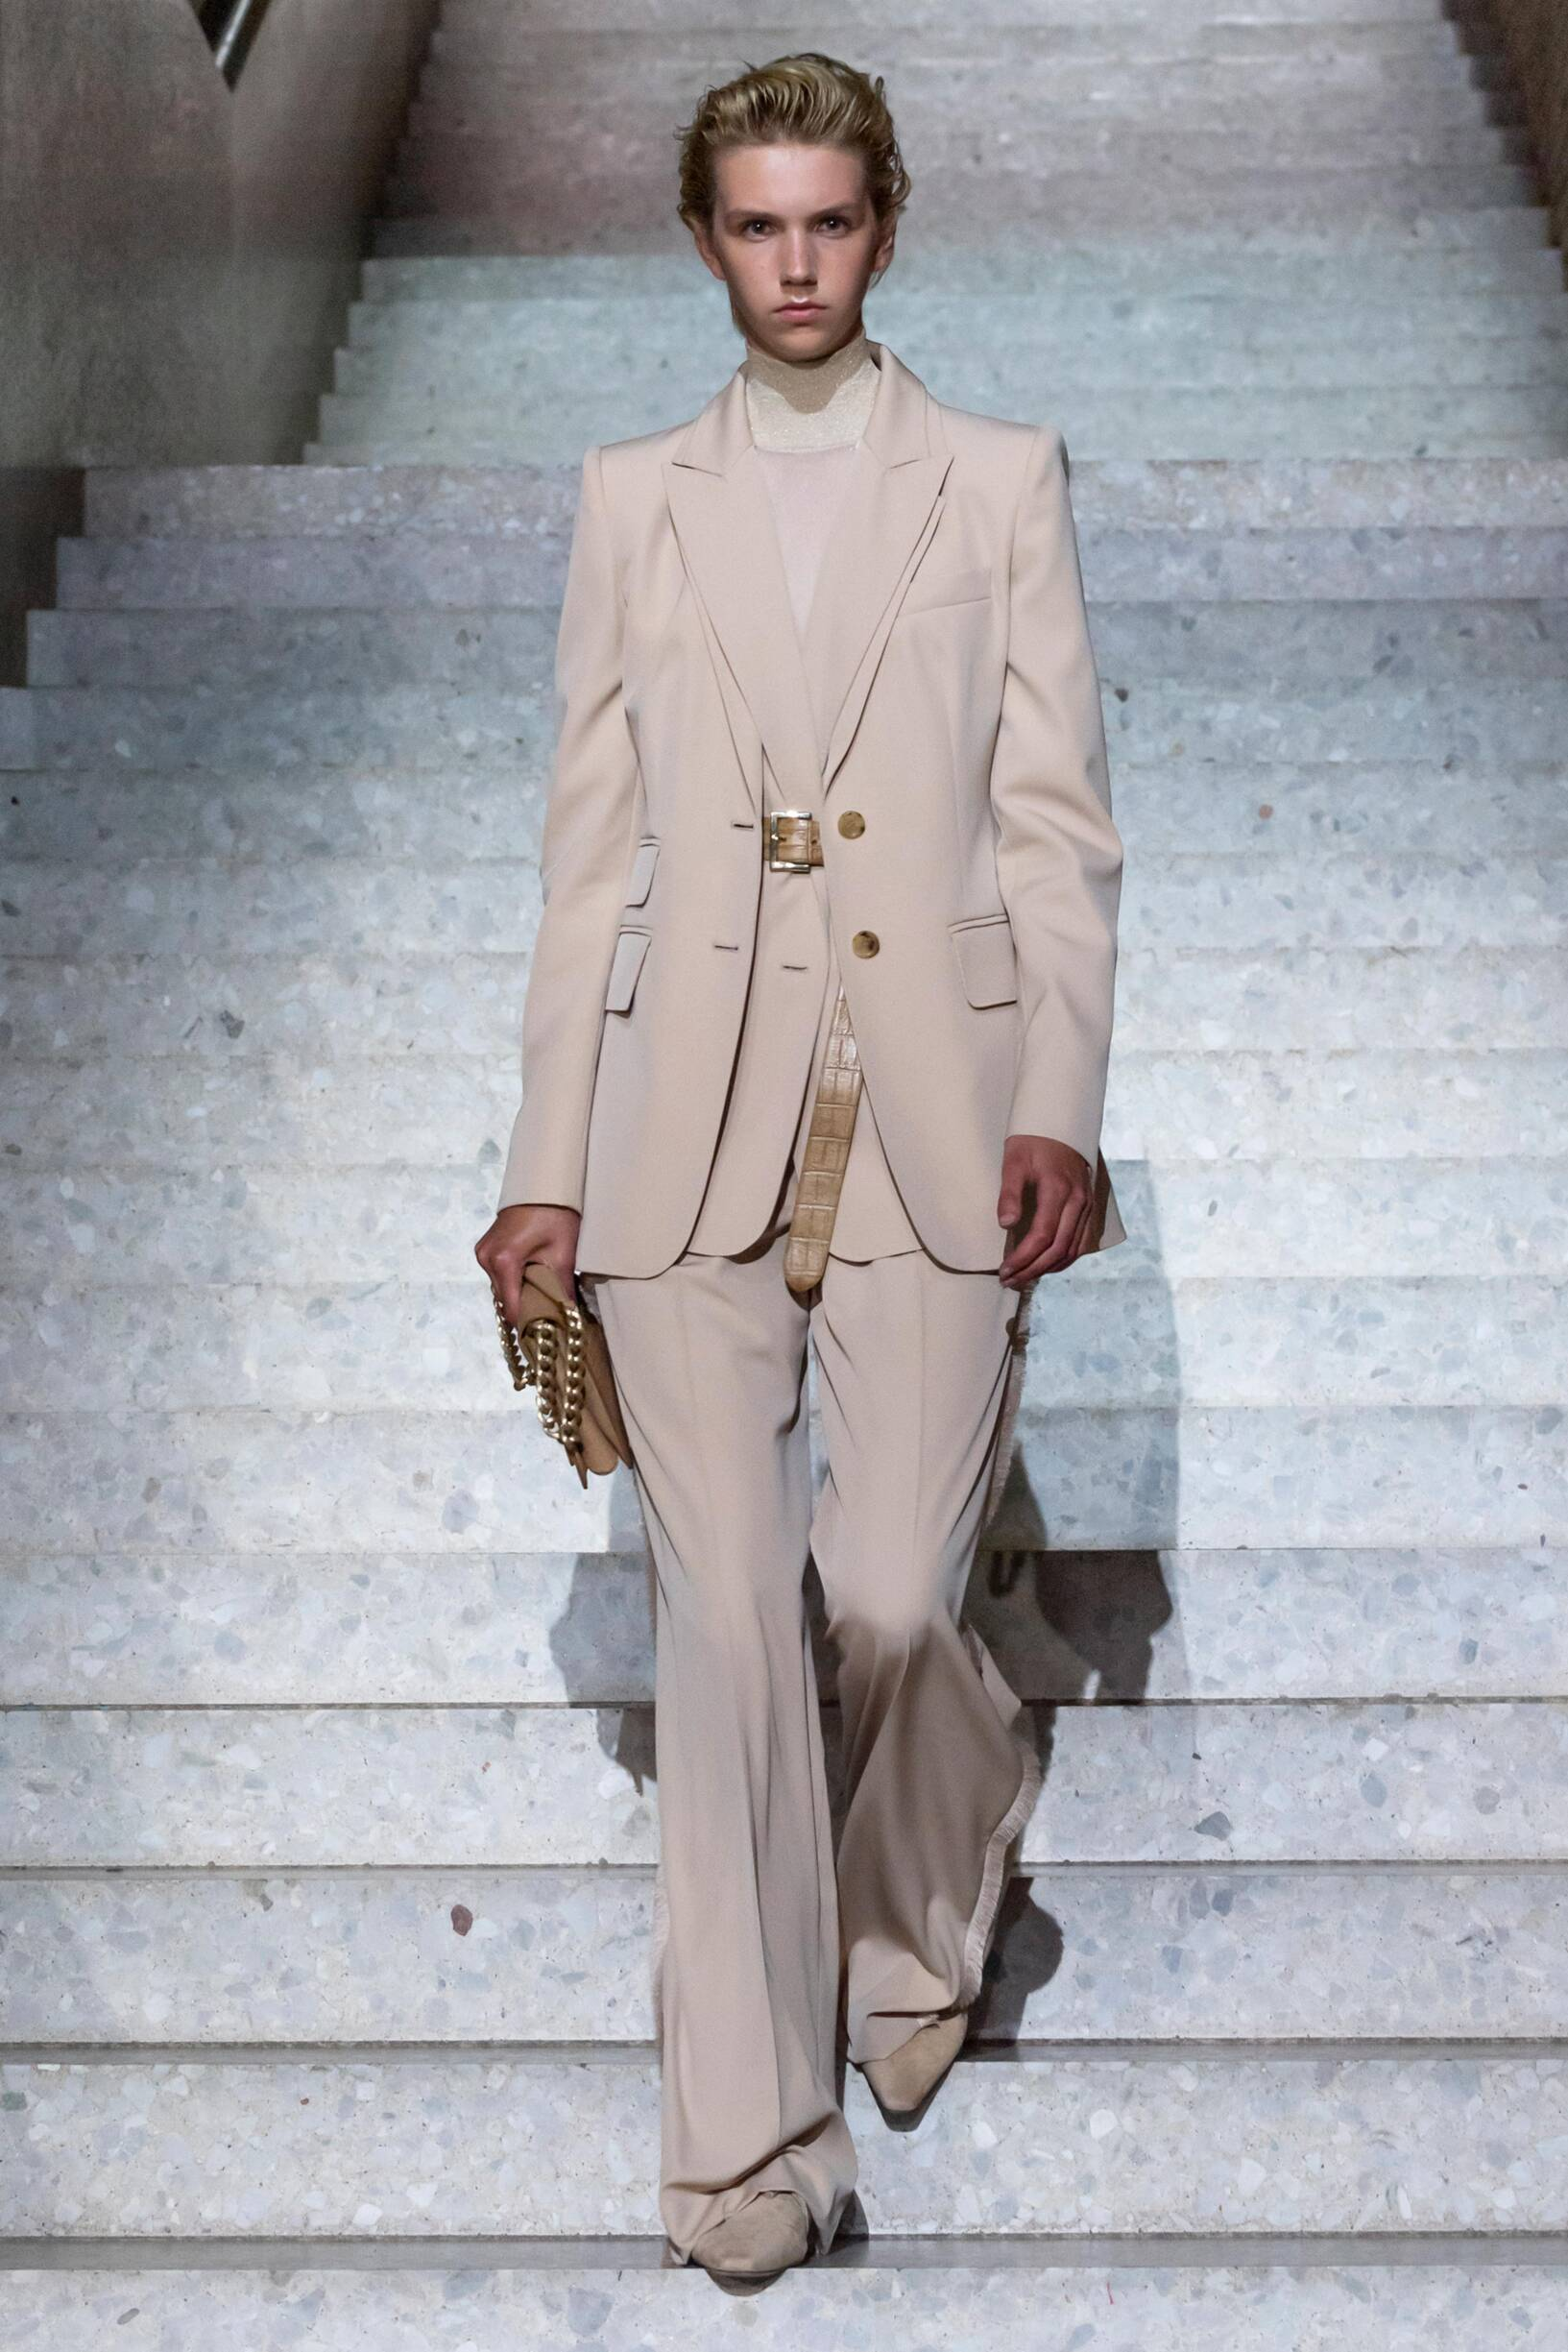 Max Mara Resort 2020 Collection Look 2 Berlin